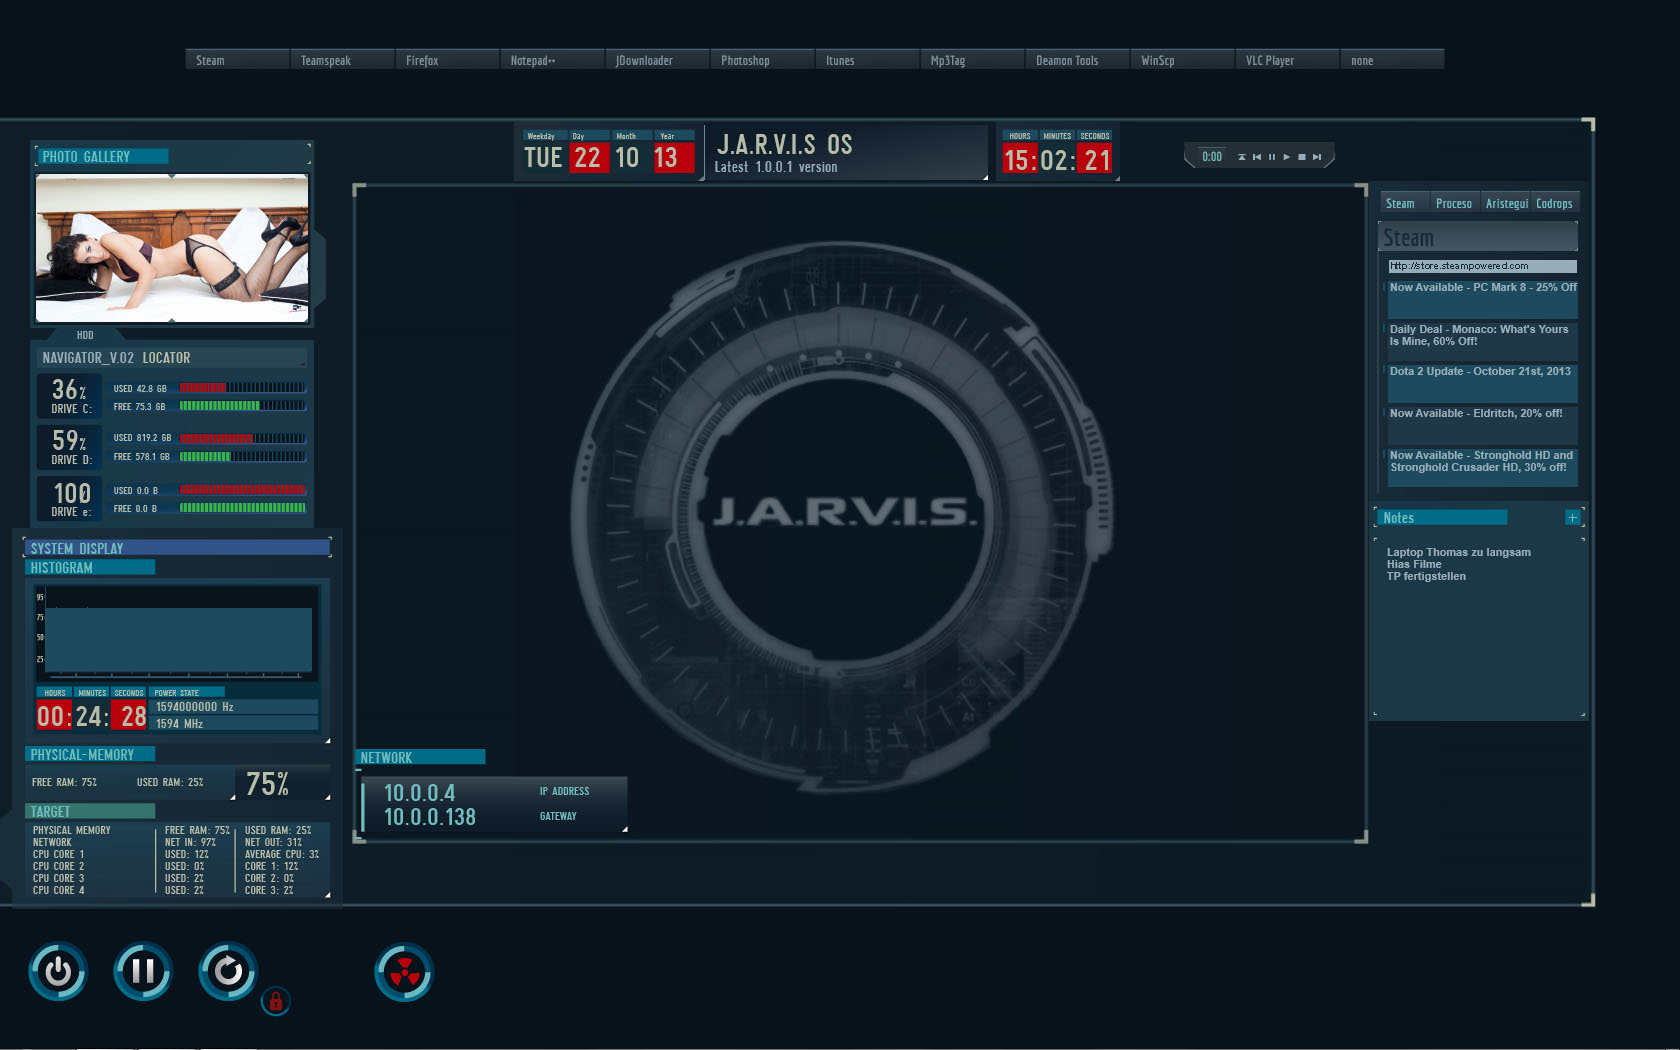 Jarvis Interface Wallpaper for Pinterest 1680x1050